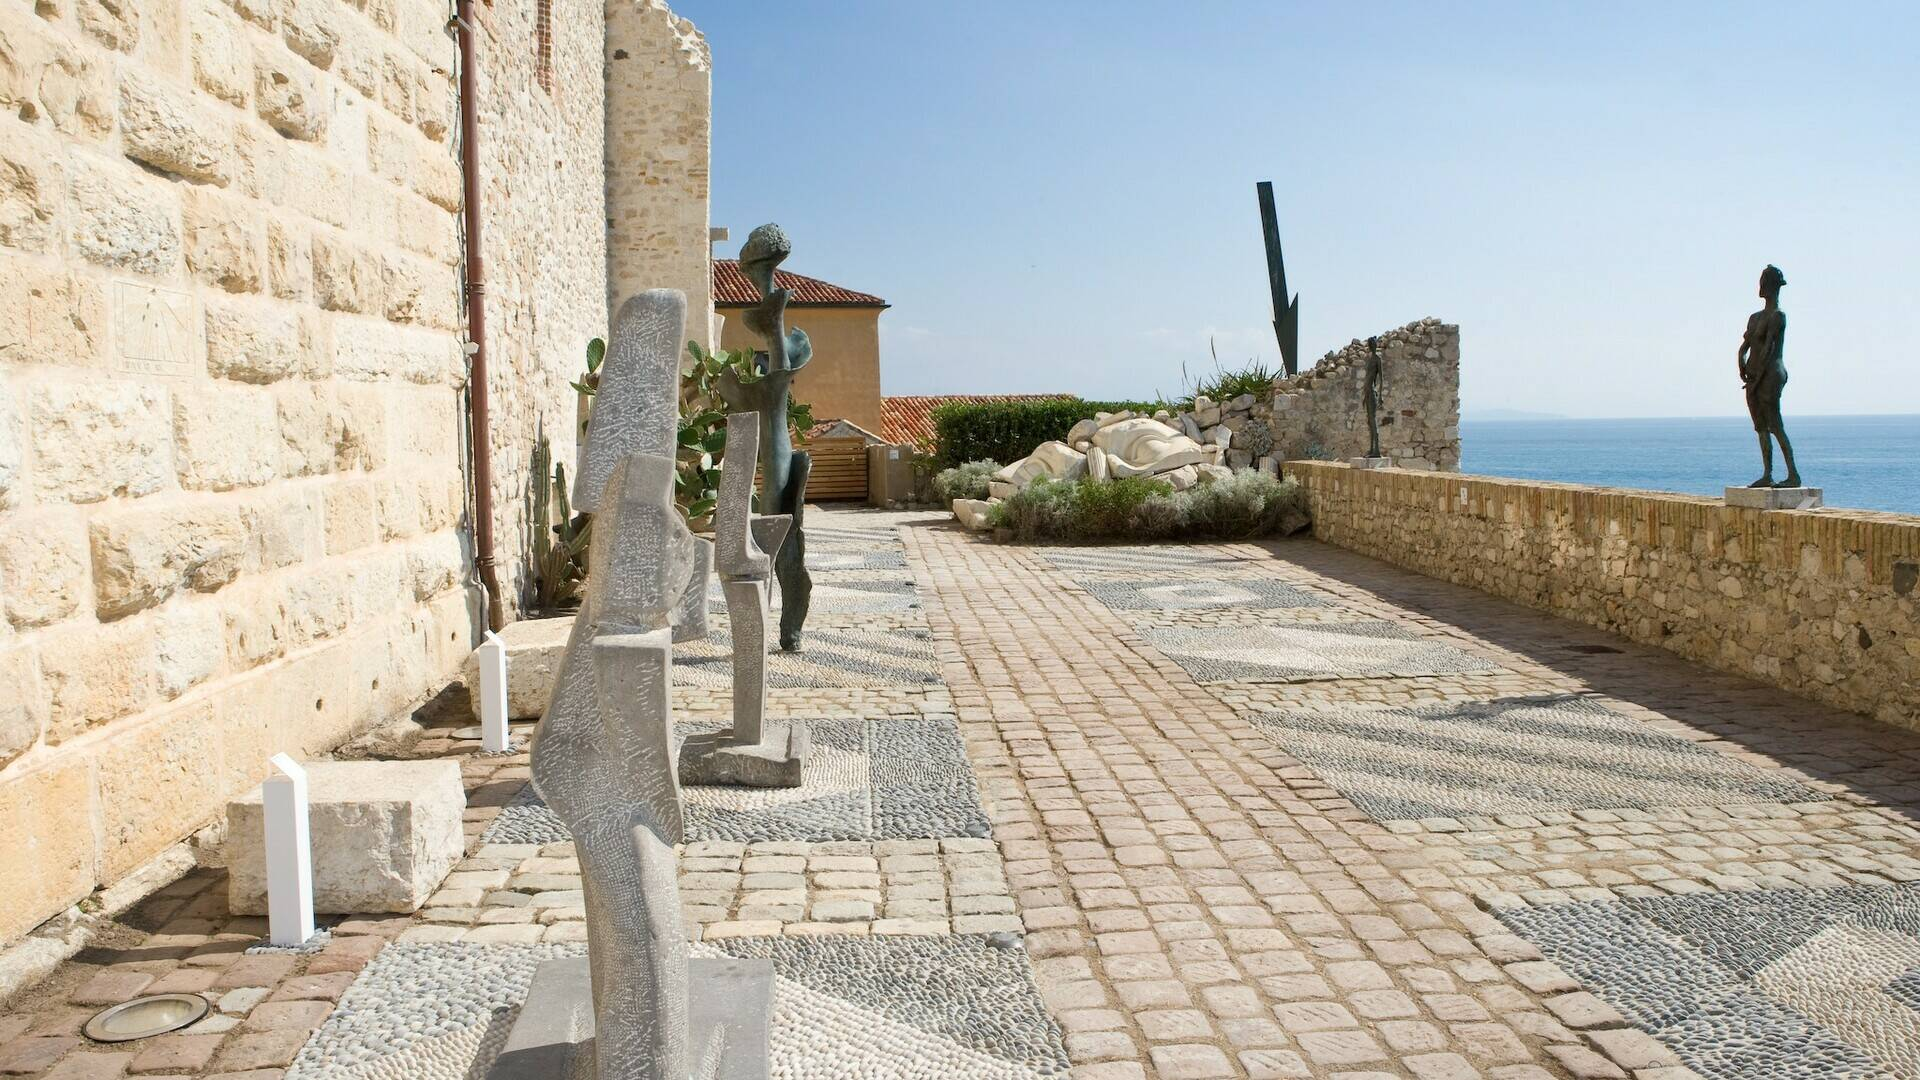 Picasso museum's terrace © J. L. Andral - musée Picasso